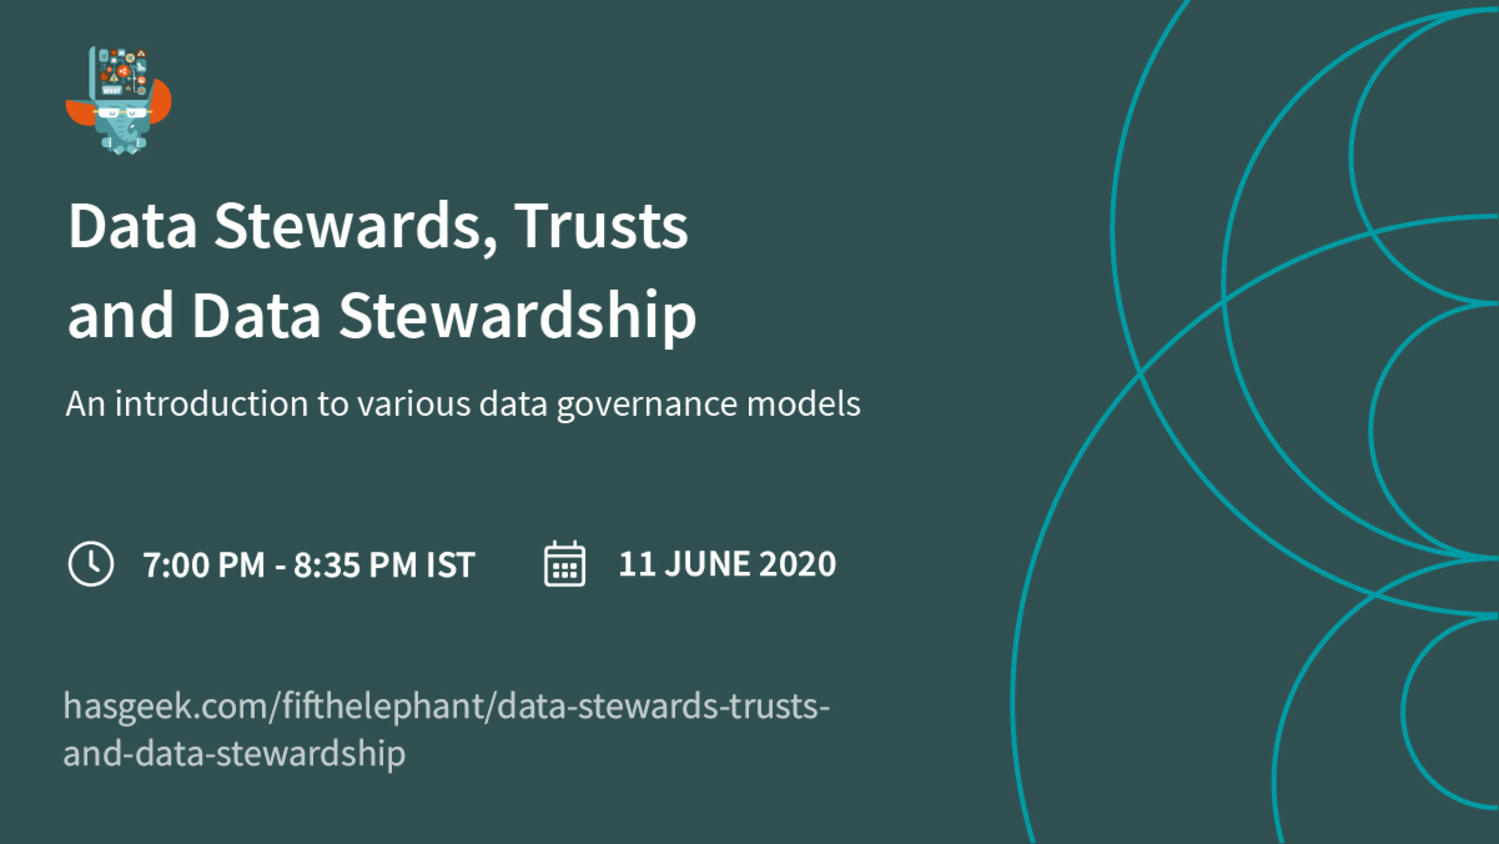 Data Stewards, Trusts and Data Stewardship